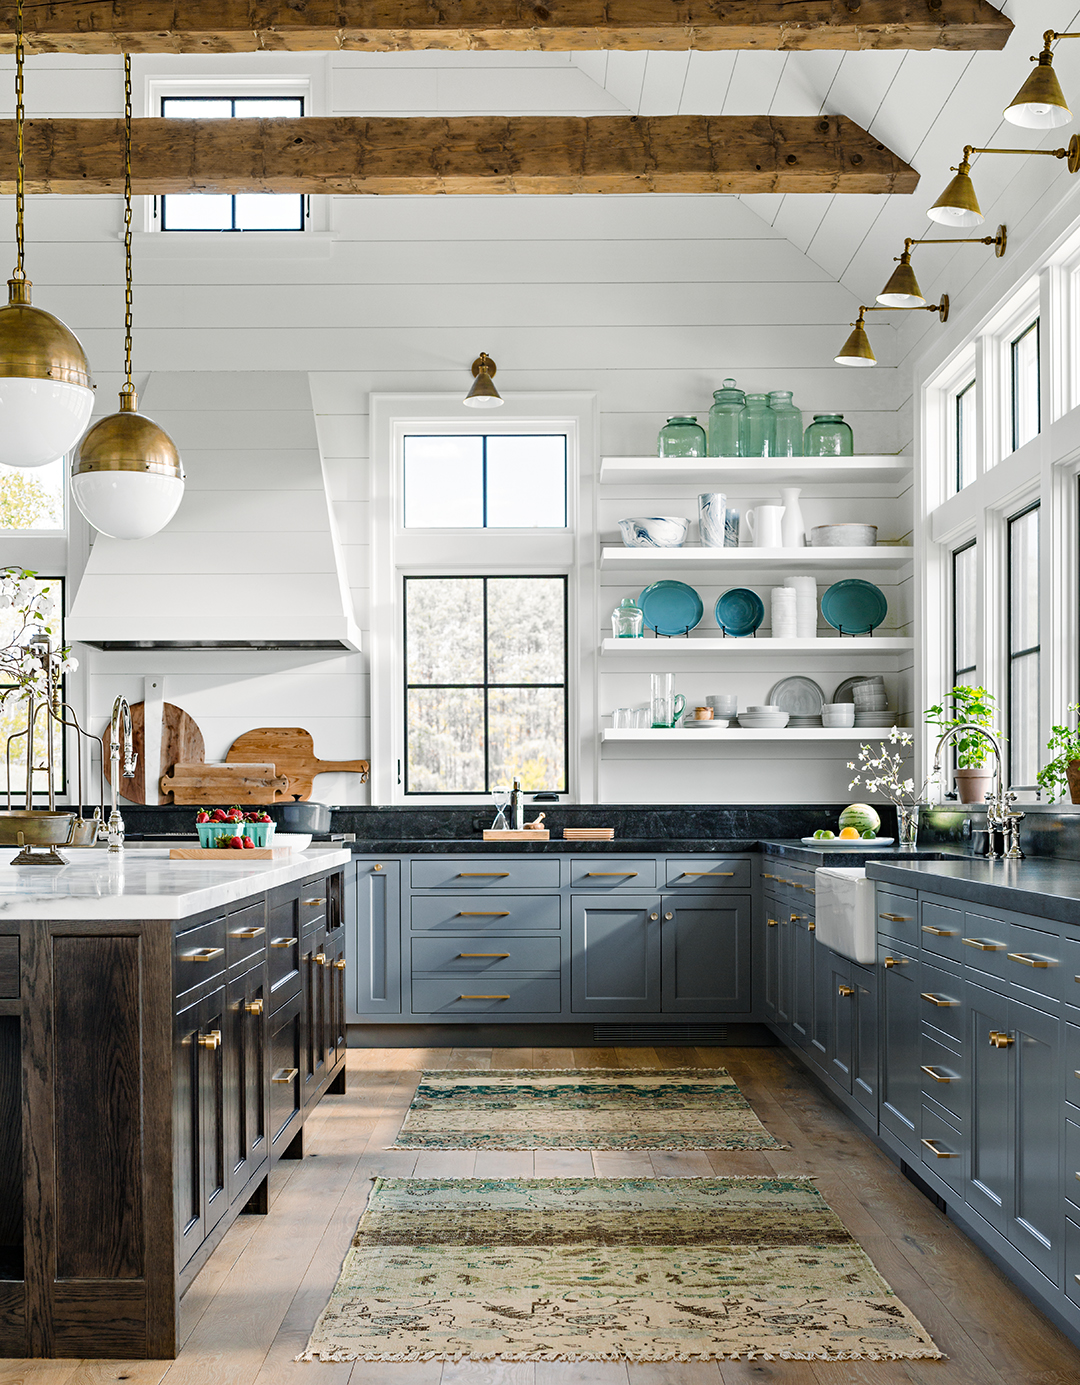 Best Paint Color For Kitchen Walls With Grey Cabinets Jun 2020